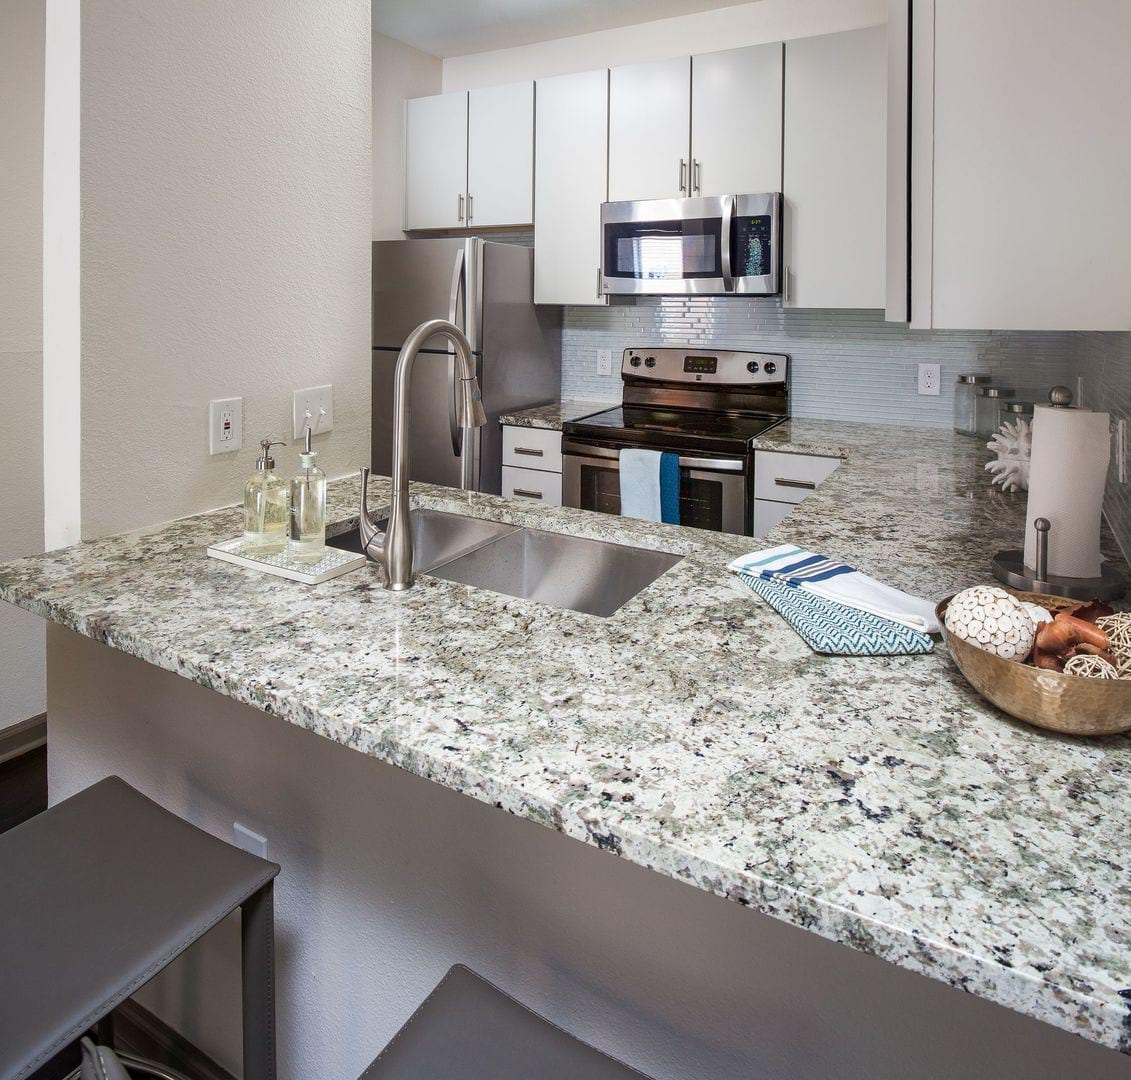 Oak Pointe Apartments: Apartments For Rent In Charlotte, NC